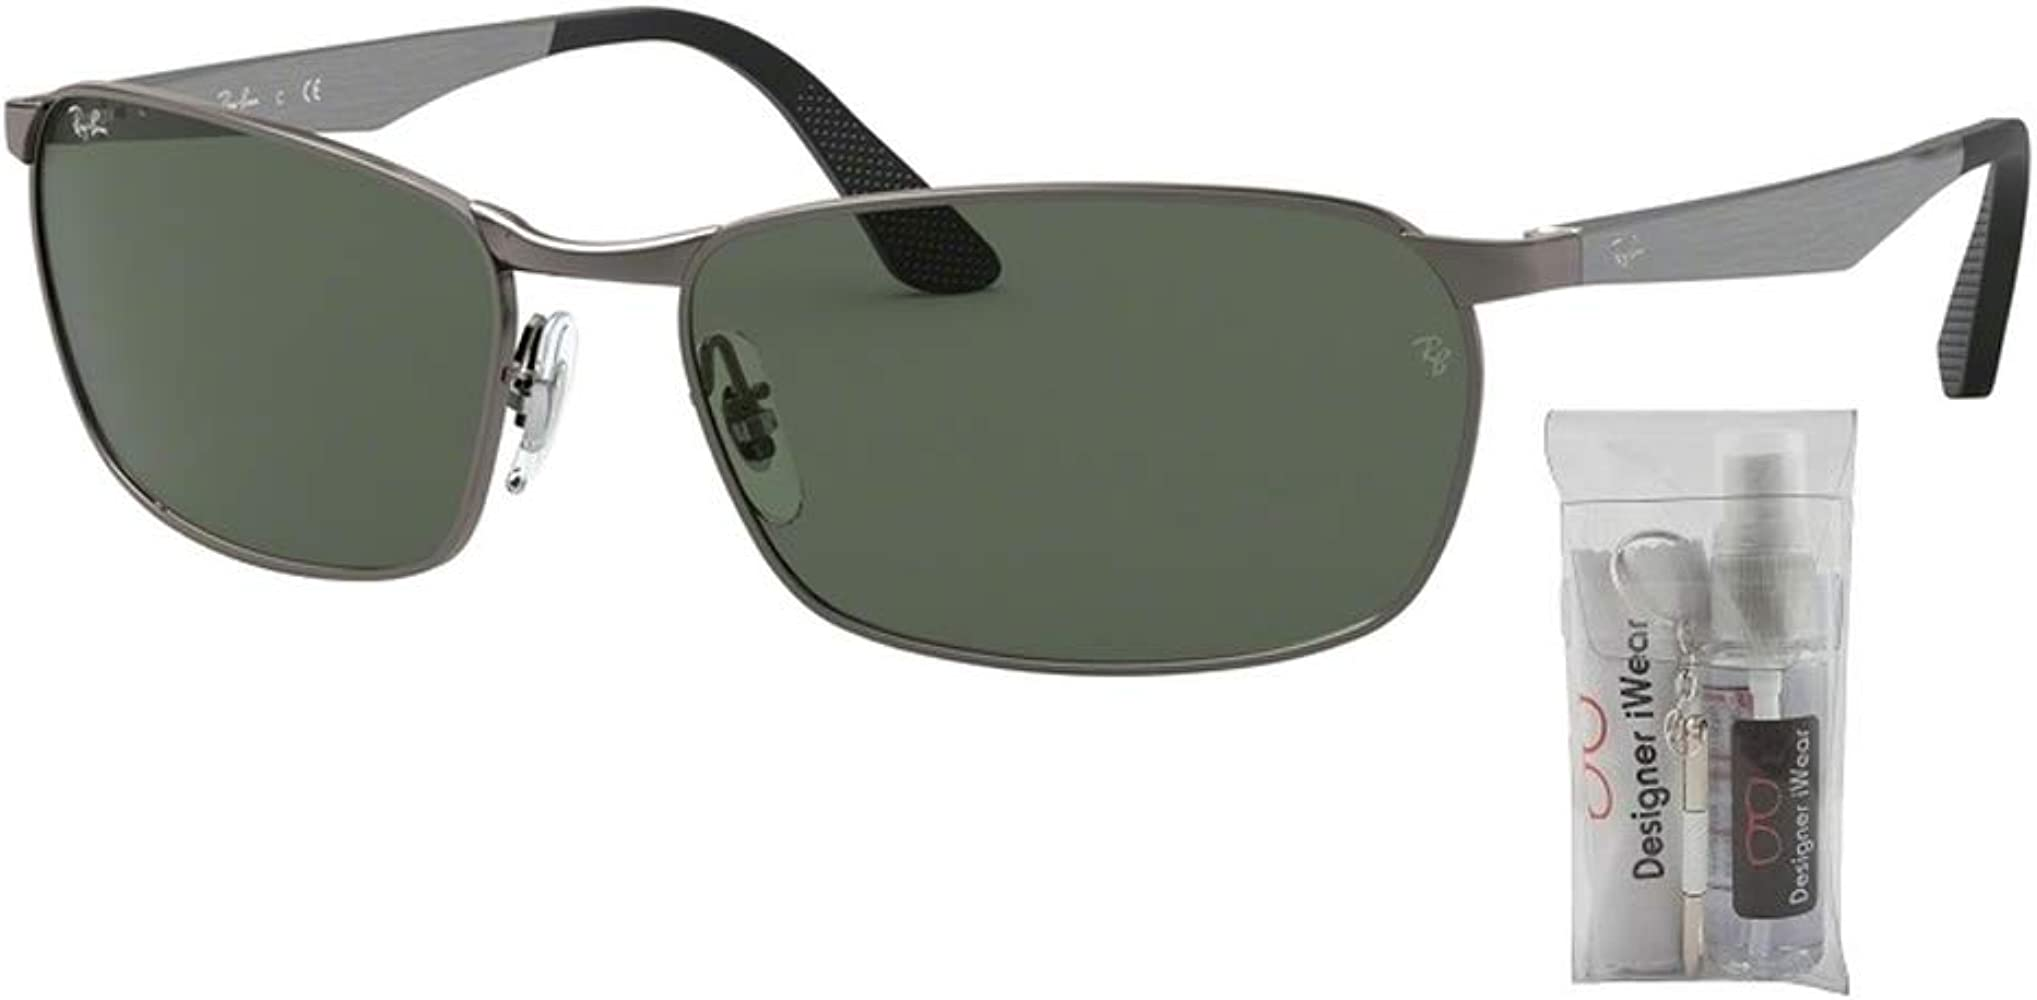 Ray-Ban RB3534 Sunglasses For Men: Amazon.es: Ropa y accesorios